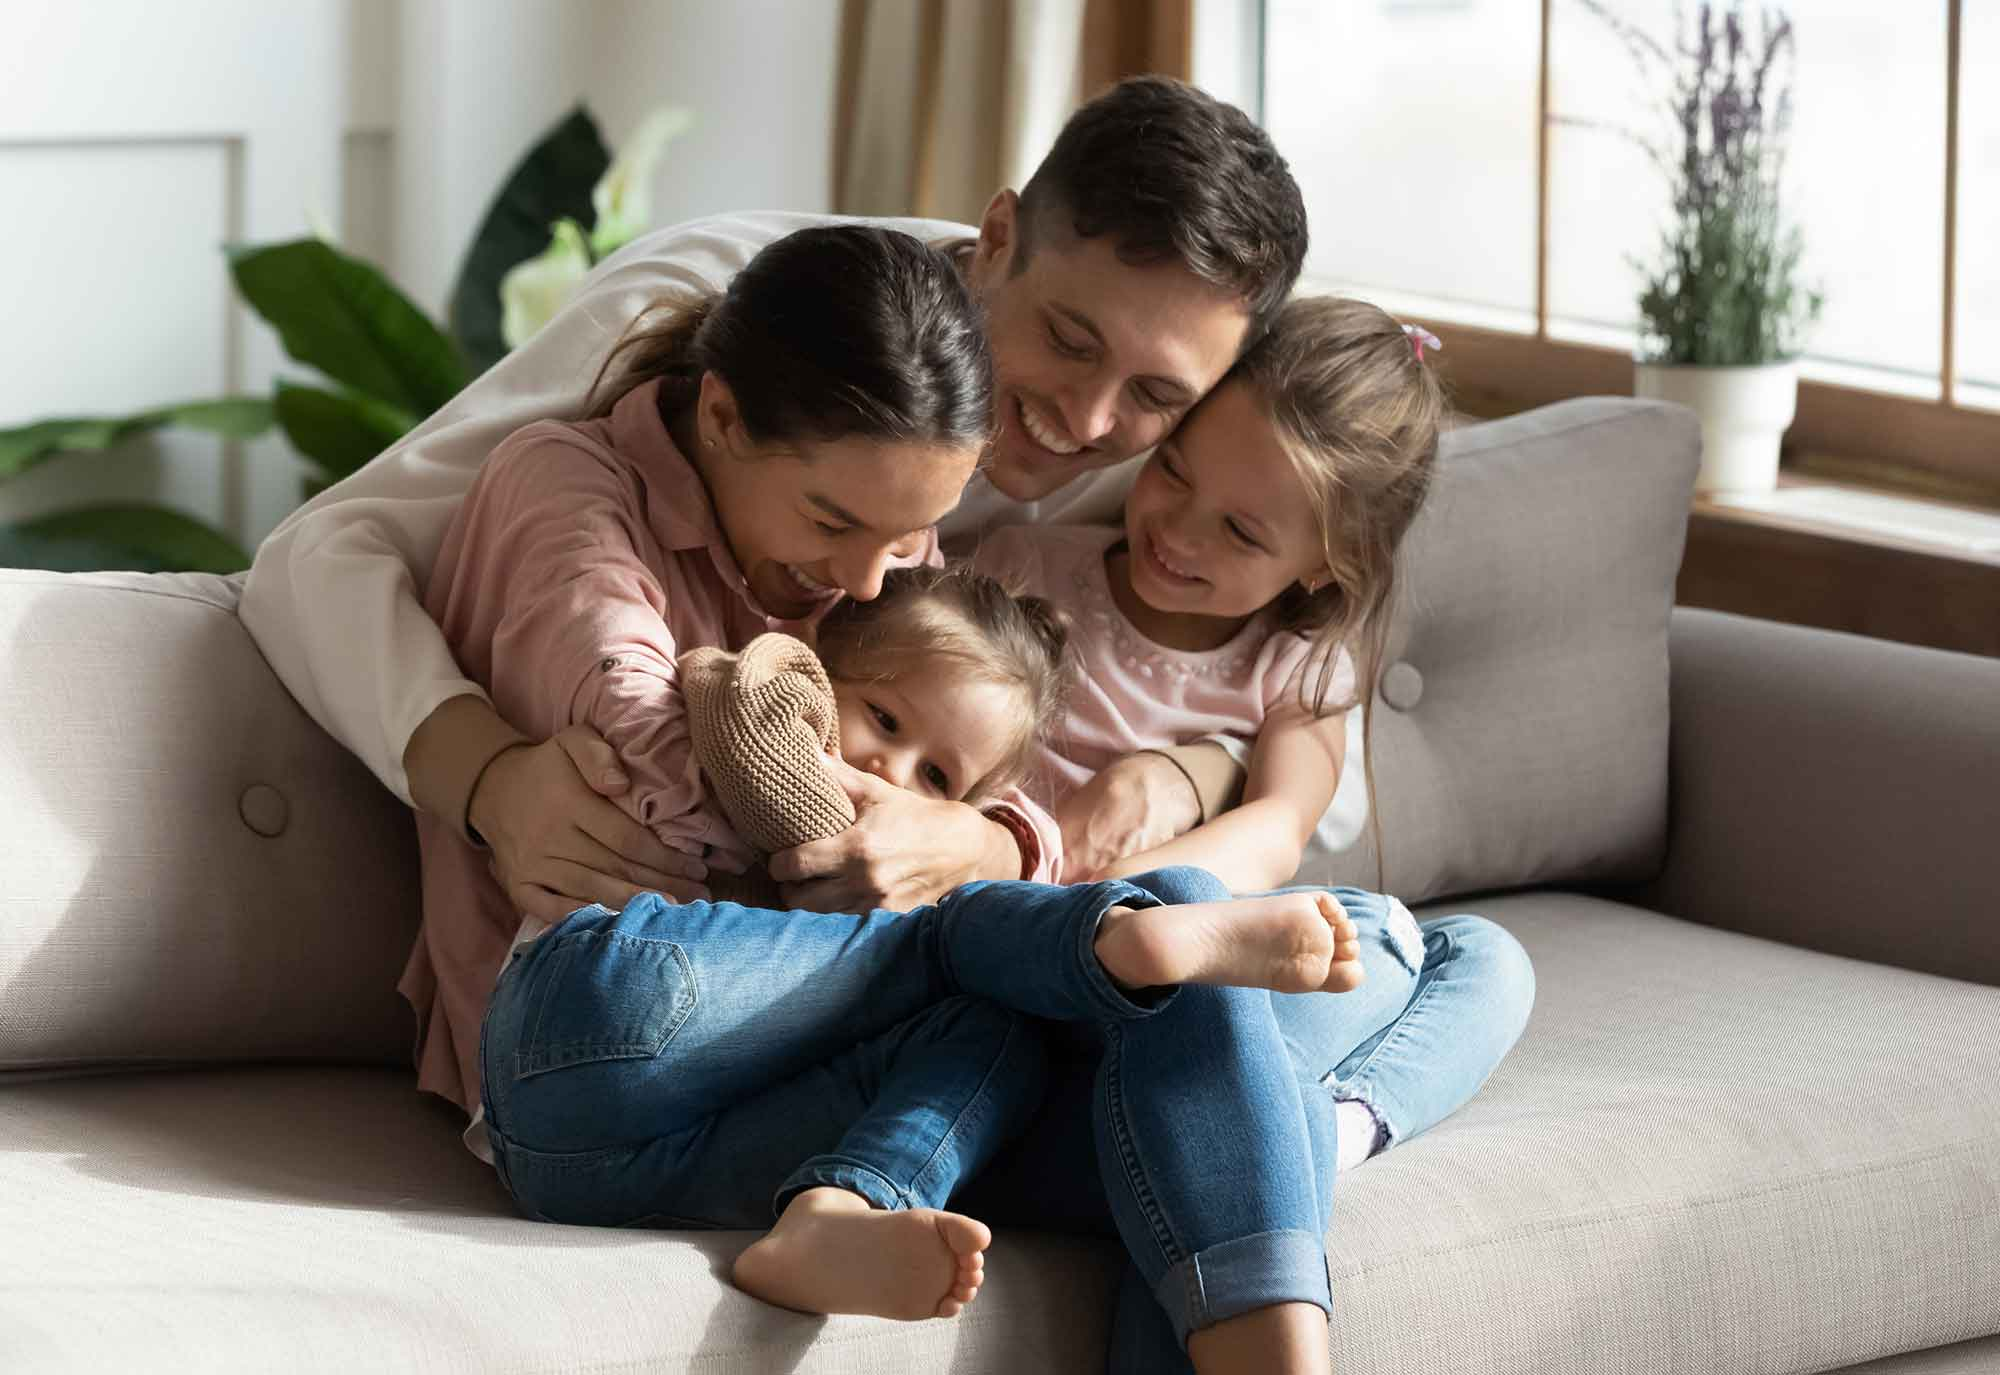 Man cuddles woman, child and baby as they sit and play on a sofa in their living room